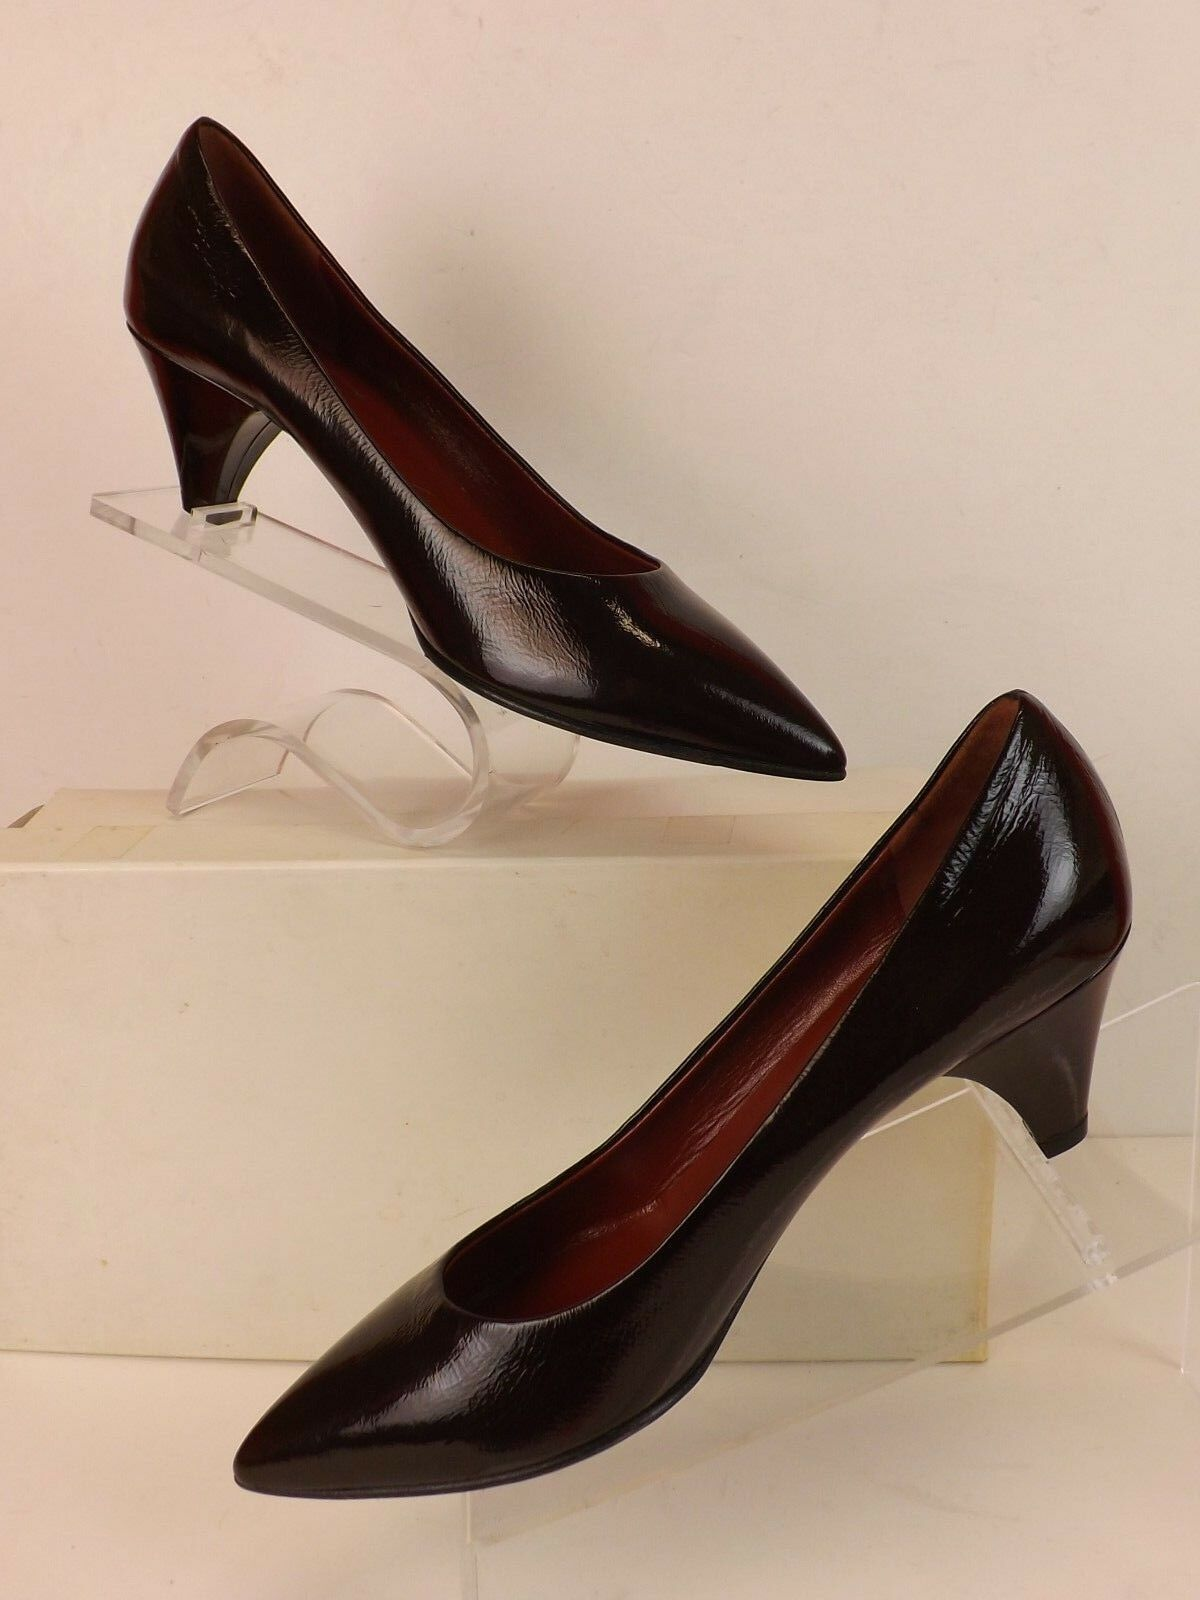 NEW MARC BY MARC JACOBS DARK BURGUNDY LEATHER LOW HEEL CLASSIC PUMPS 39.5 ITALY